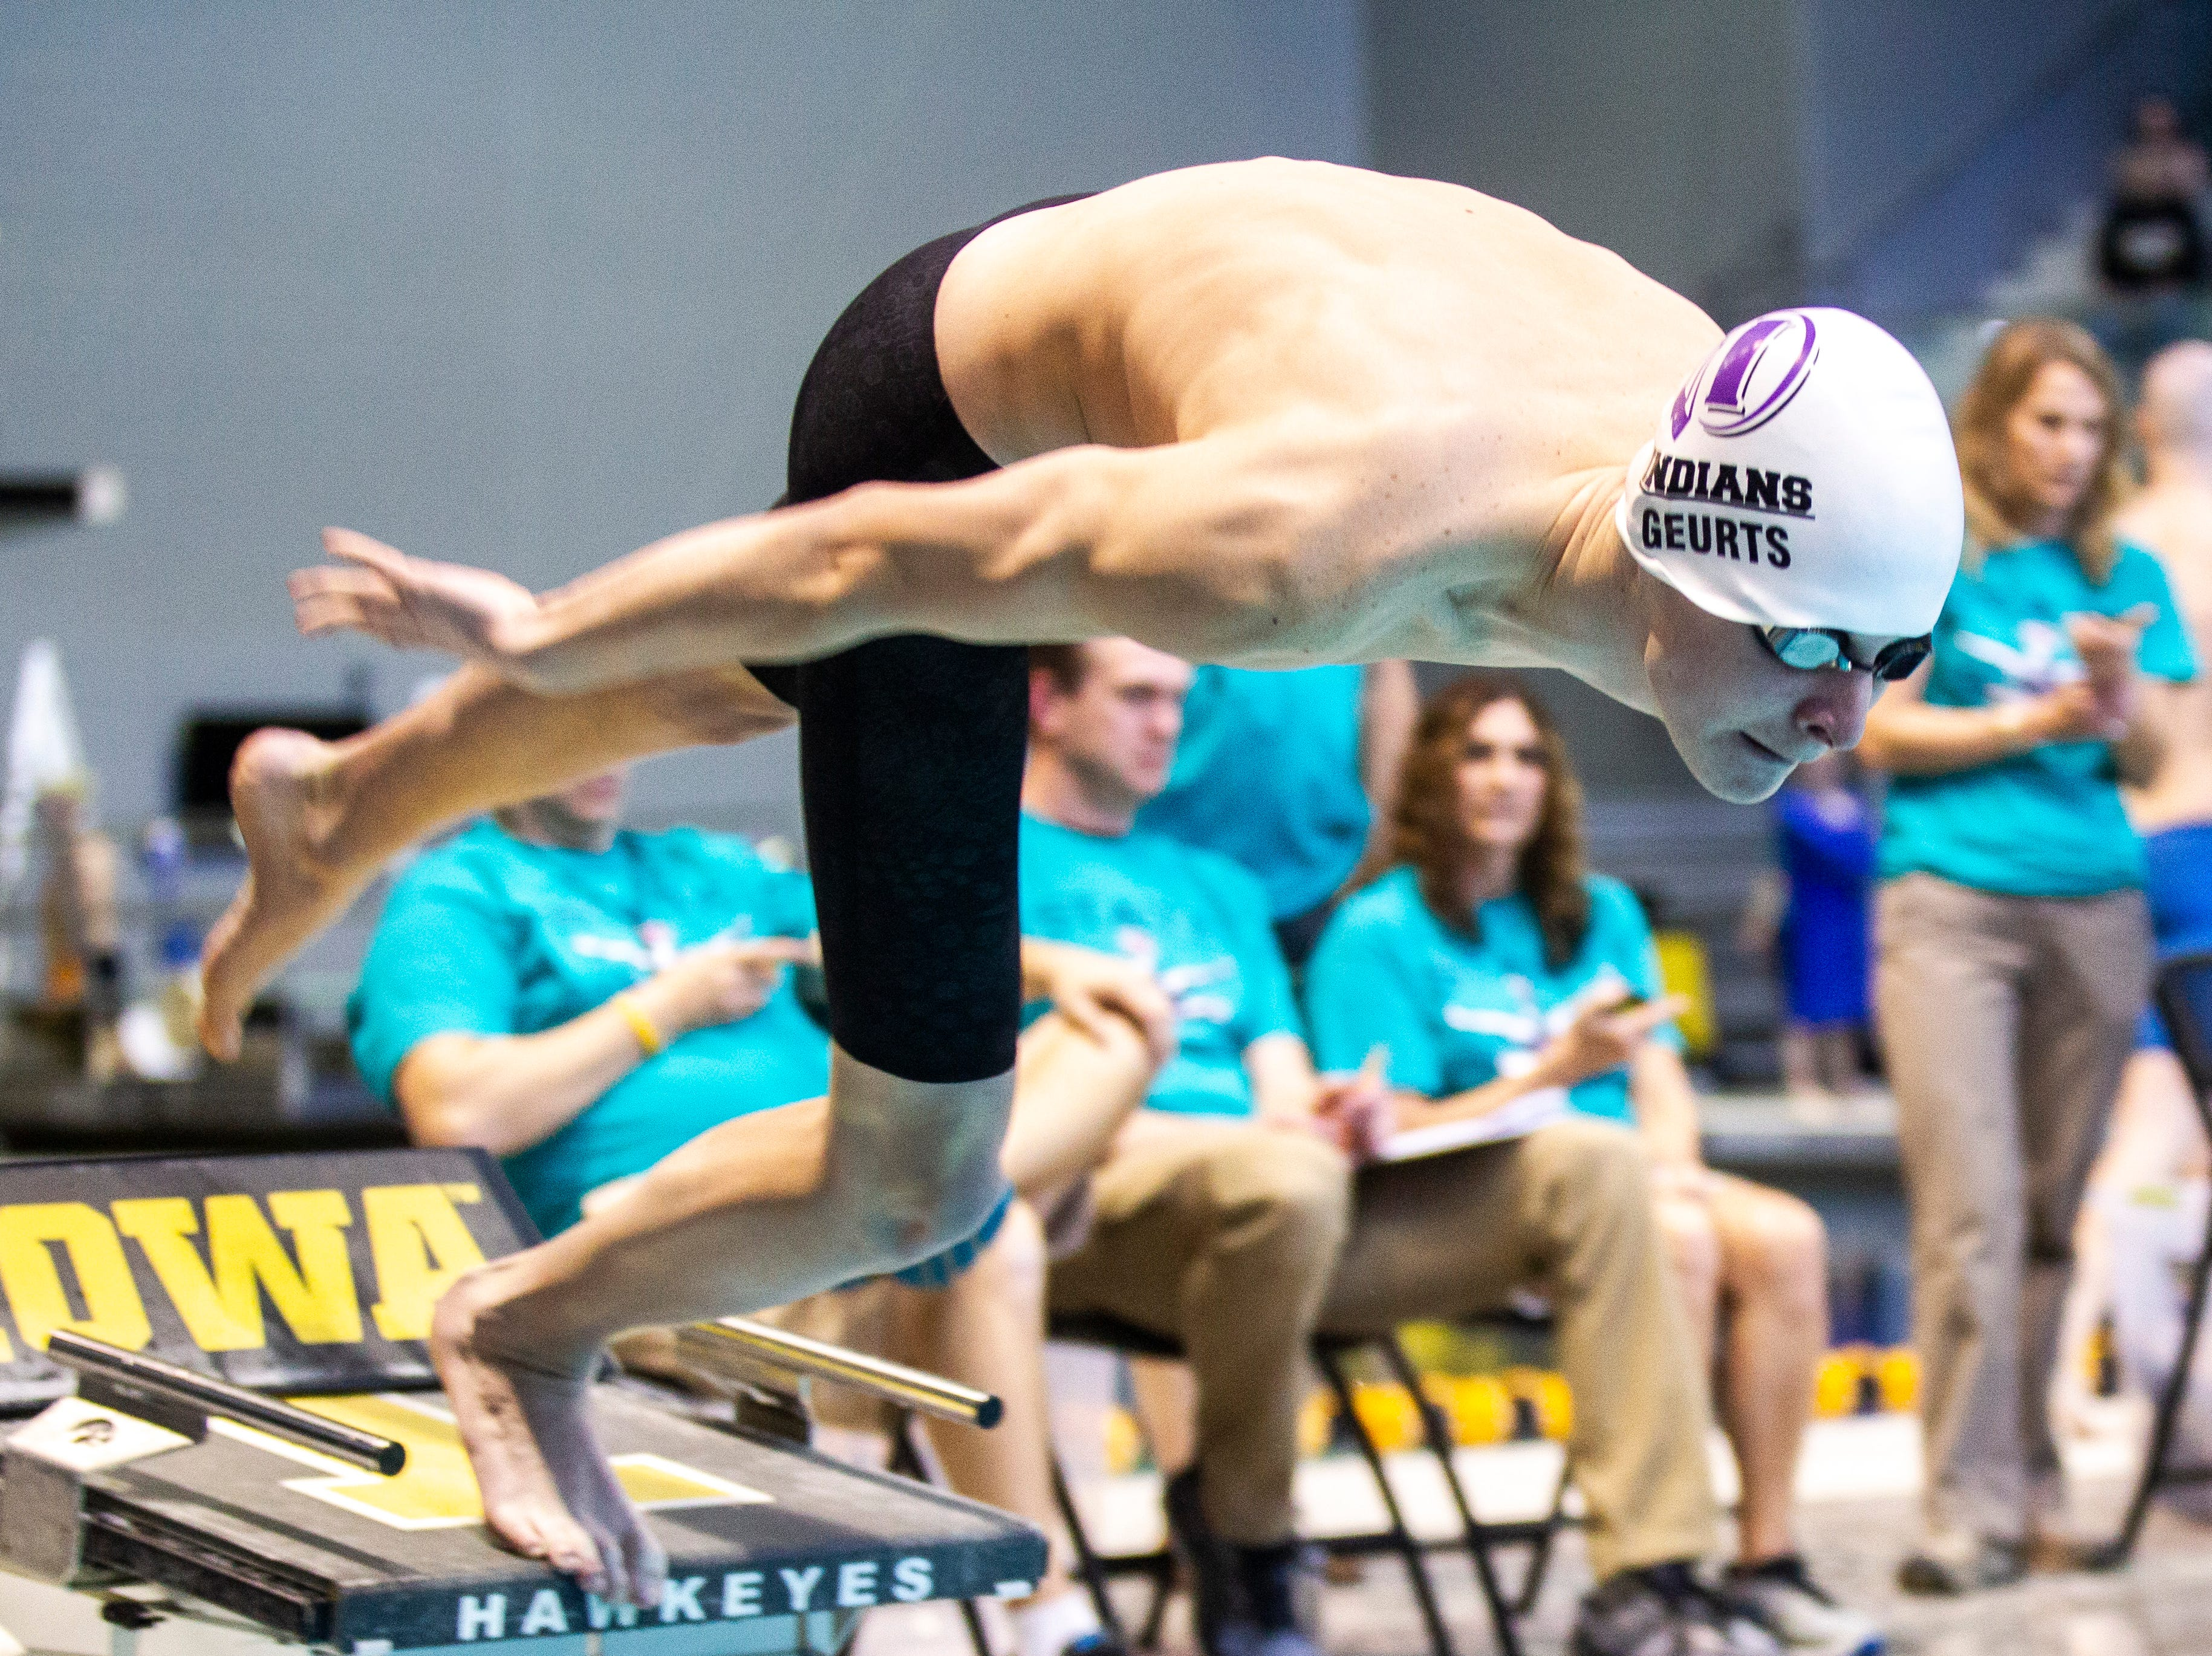 Indianola junior Collin Geurts leaps off the blocks while competing in the 200 yard freestyle during the Iowa boys' state swimming regional championship meet on Saturday, Feb. 9, 2019 at Campus Recreation and Wellness Center on the University of Iowa campus in Iowa City, Iowa. Geurts finished 21st overall, with a time of 1:48.64.